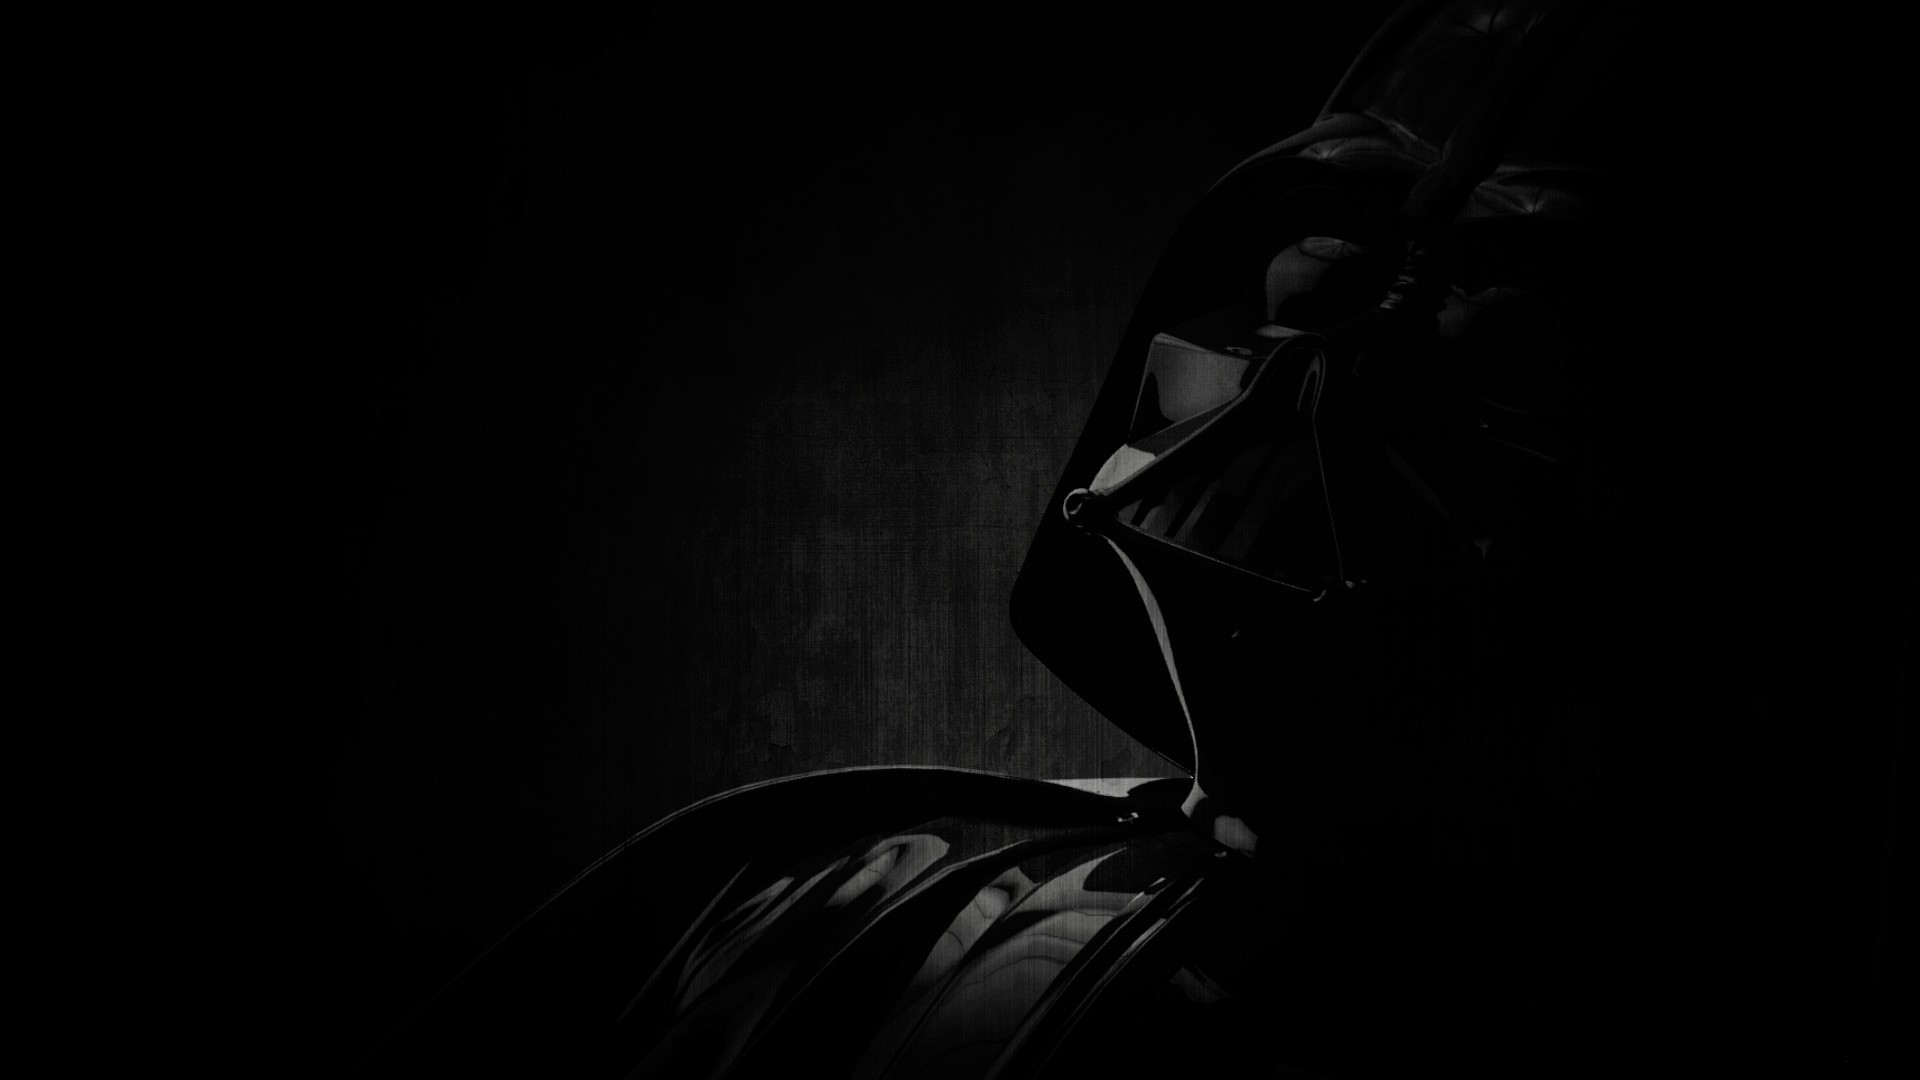 Darth Vader Wallpaper Image